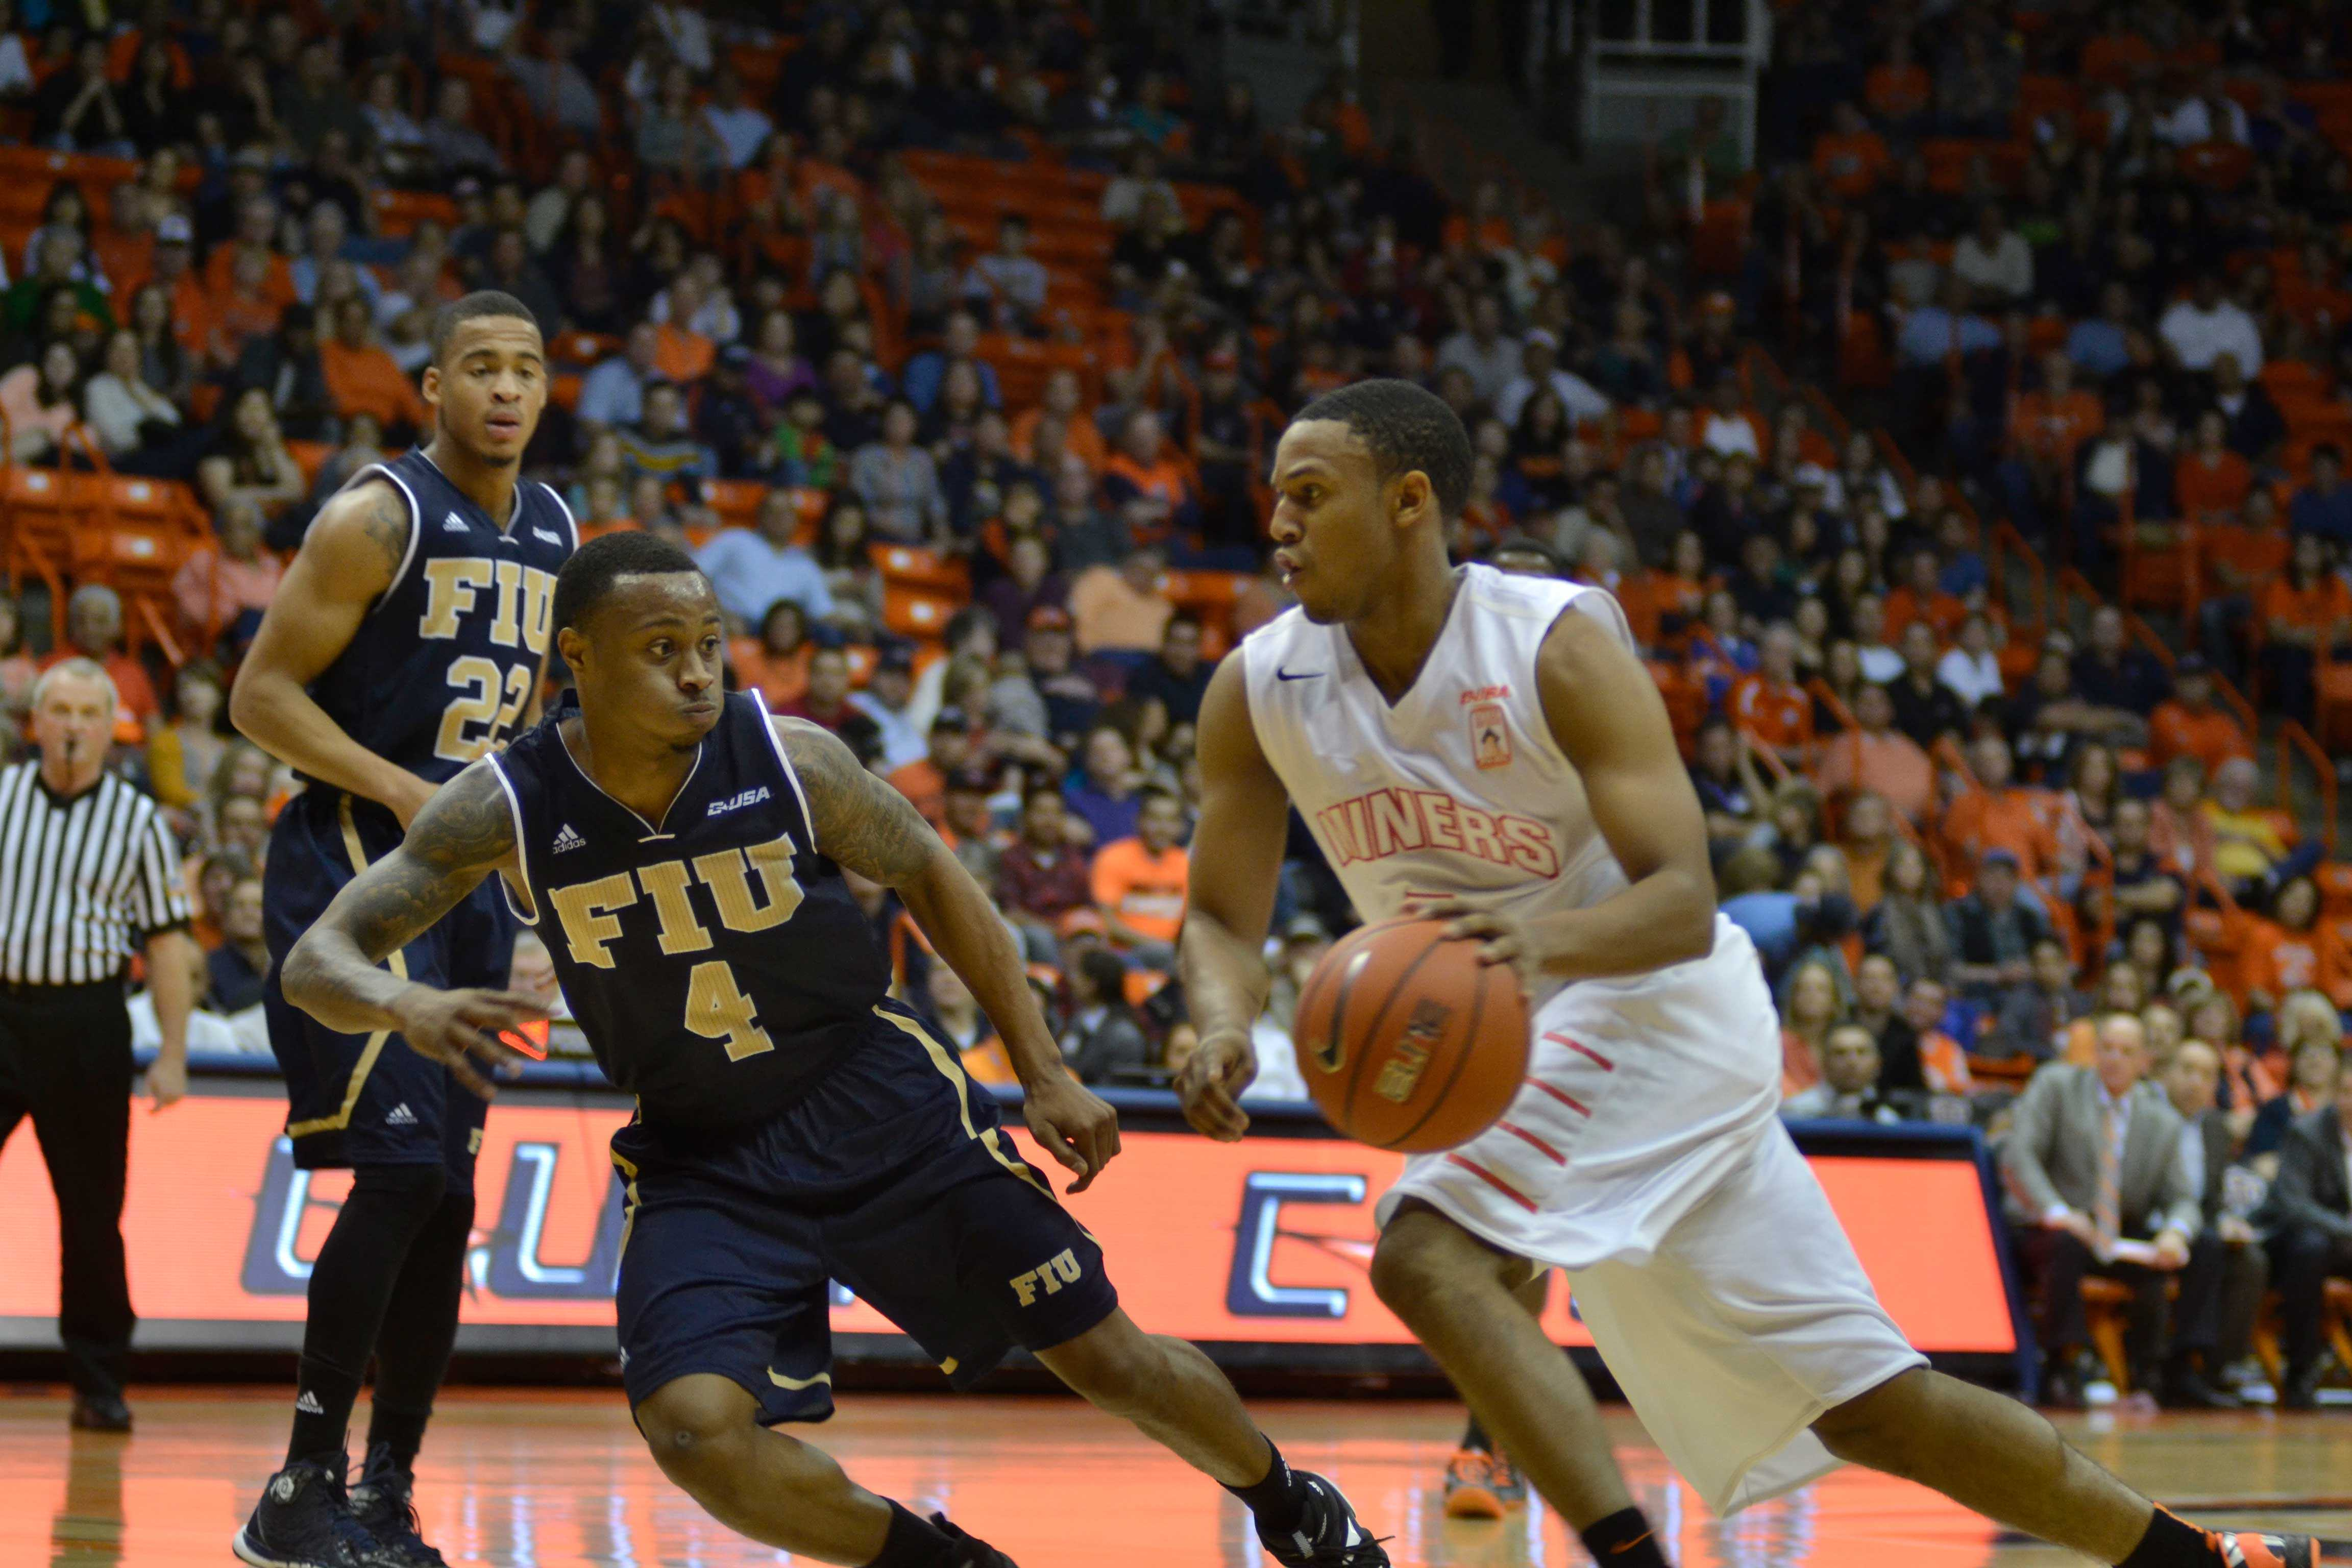 Junior point guard C.J. Cooper has scored more than 10 points per game in eight of the last nine Miners games.